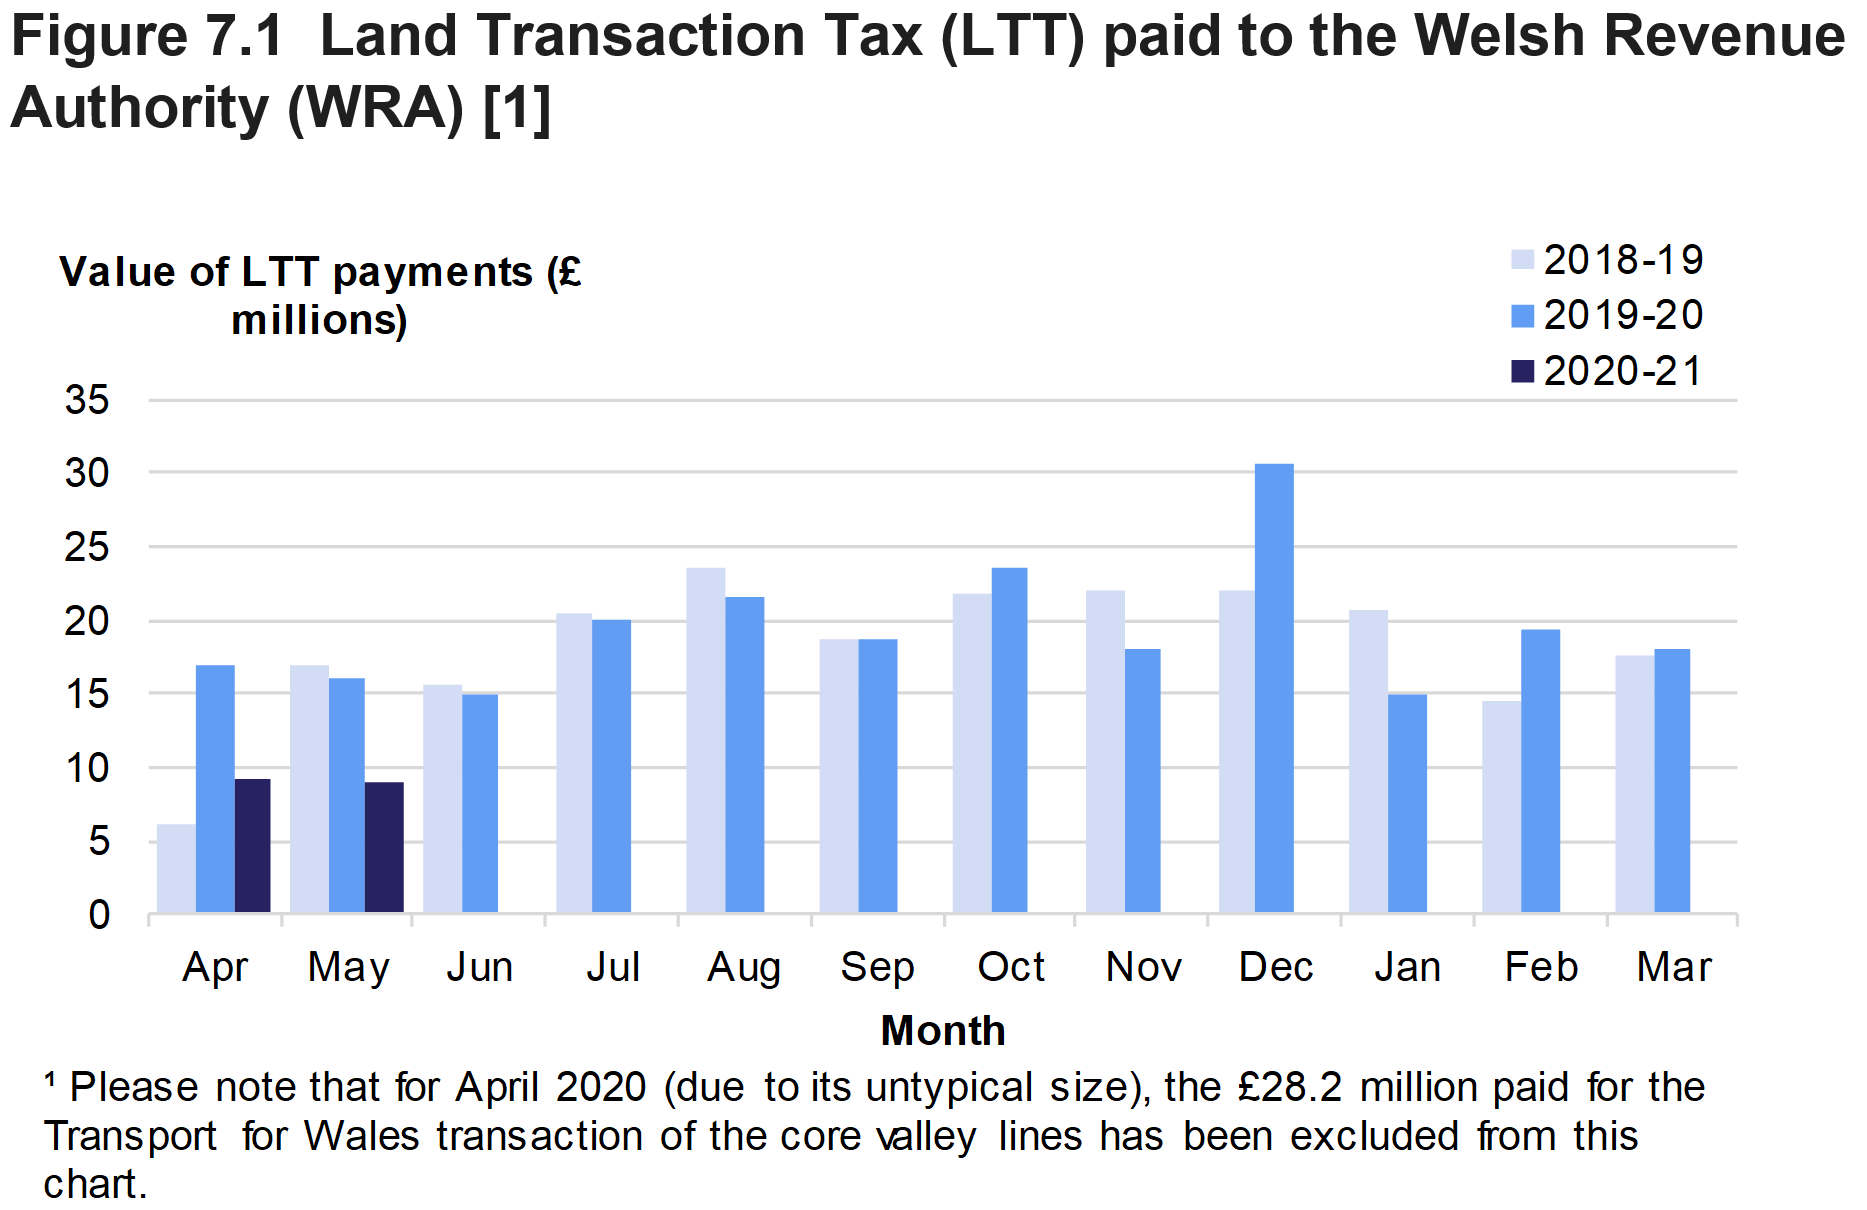 Figure 7.1 shows the monthly amounts of Land Transaction Tax paid to the Welsh Revenue Authority, for April 2018 to May 2020.